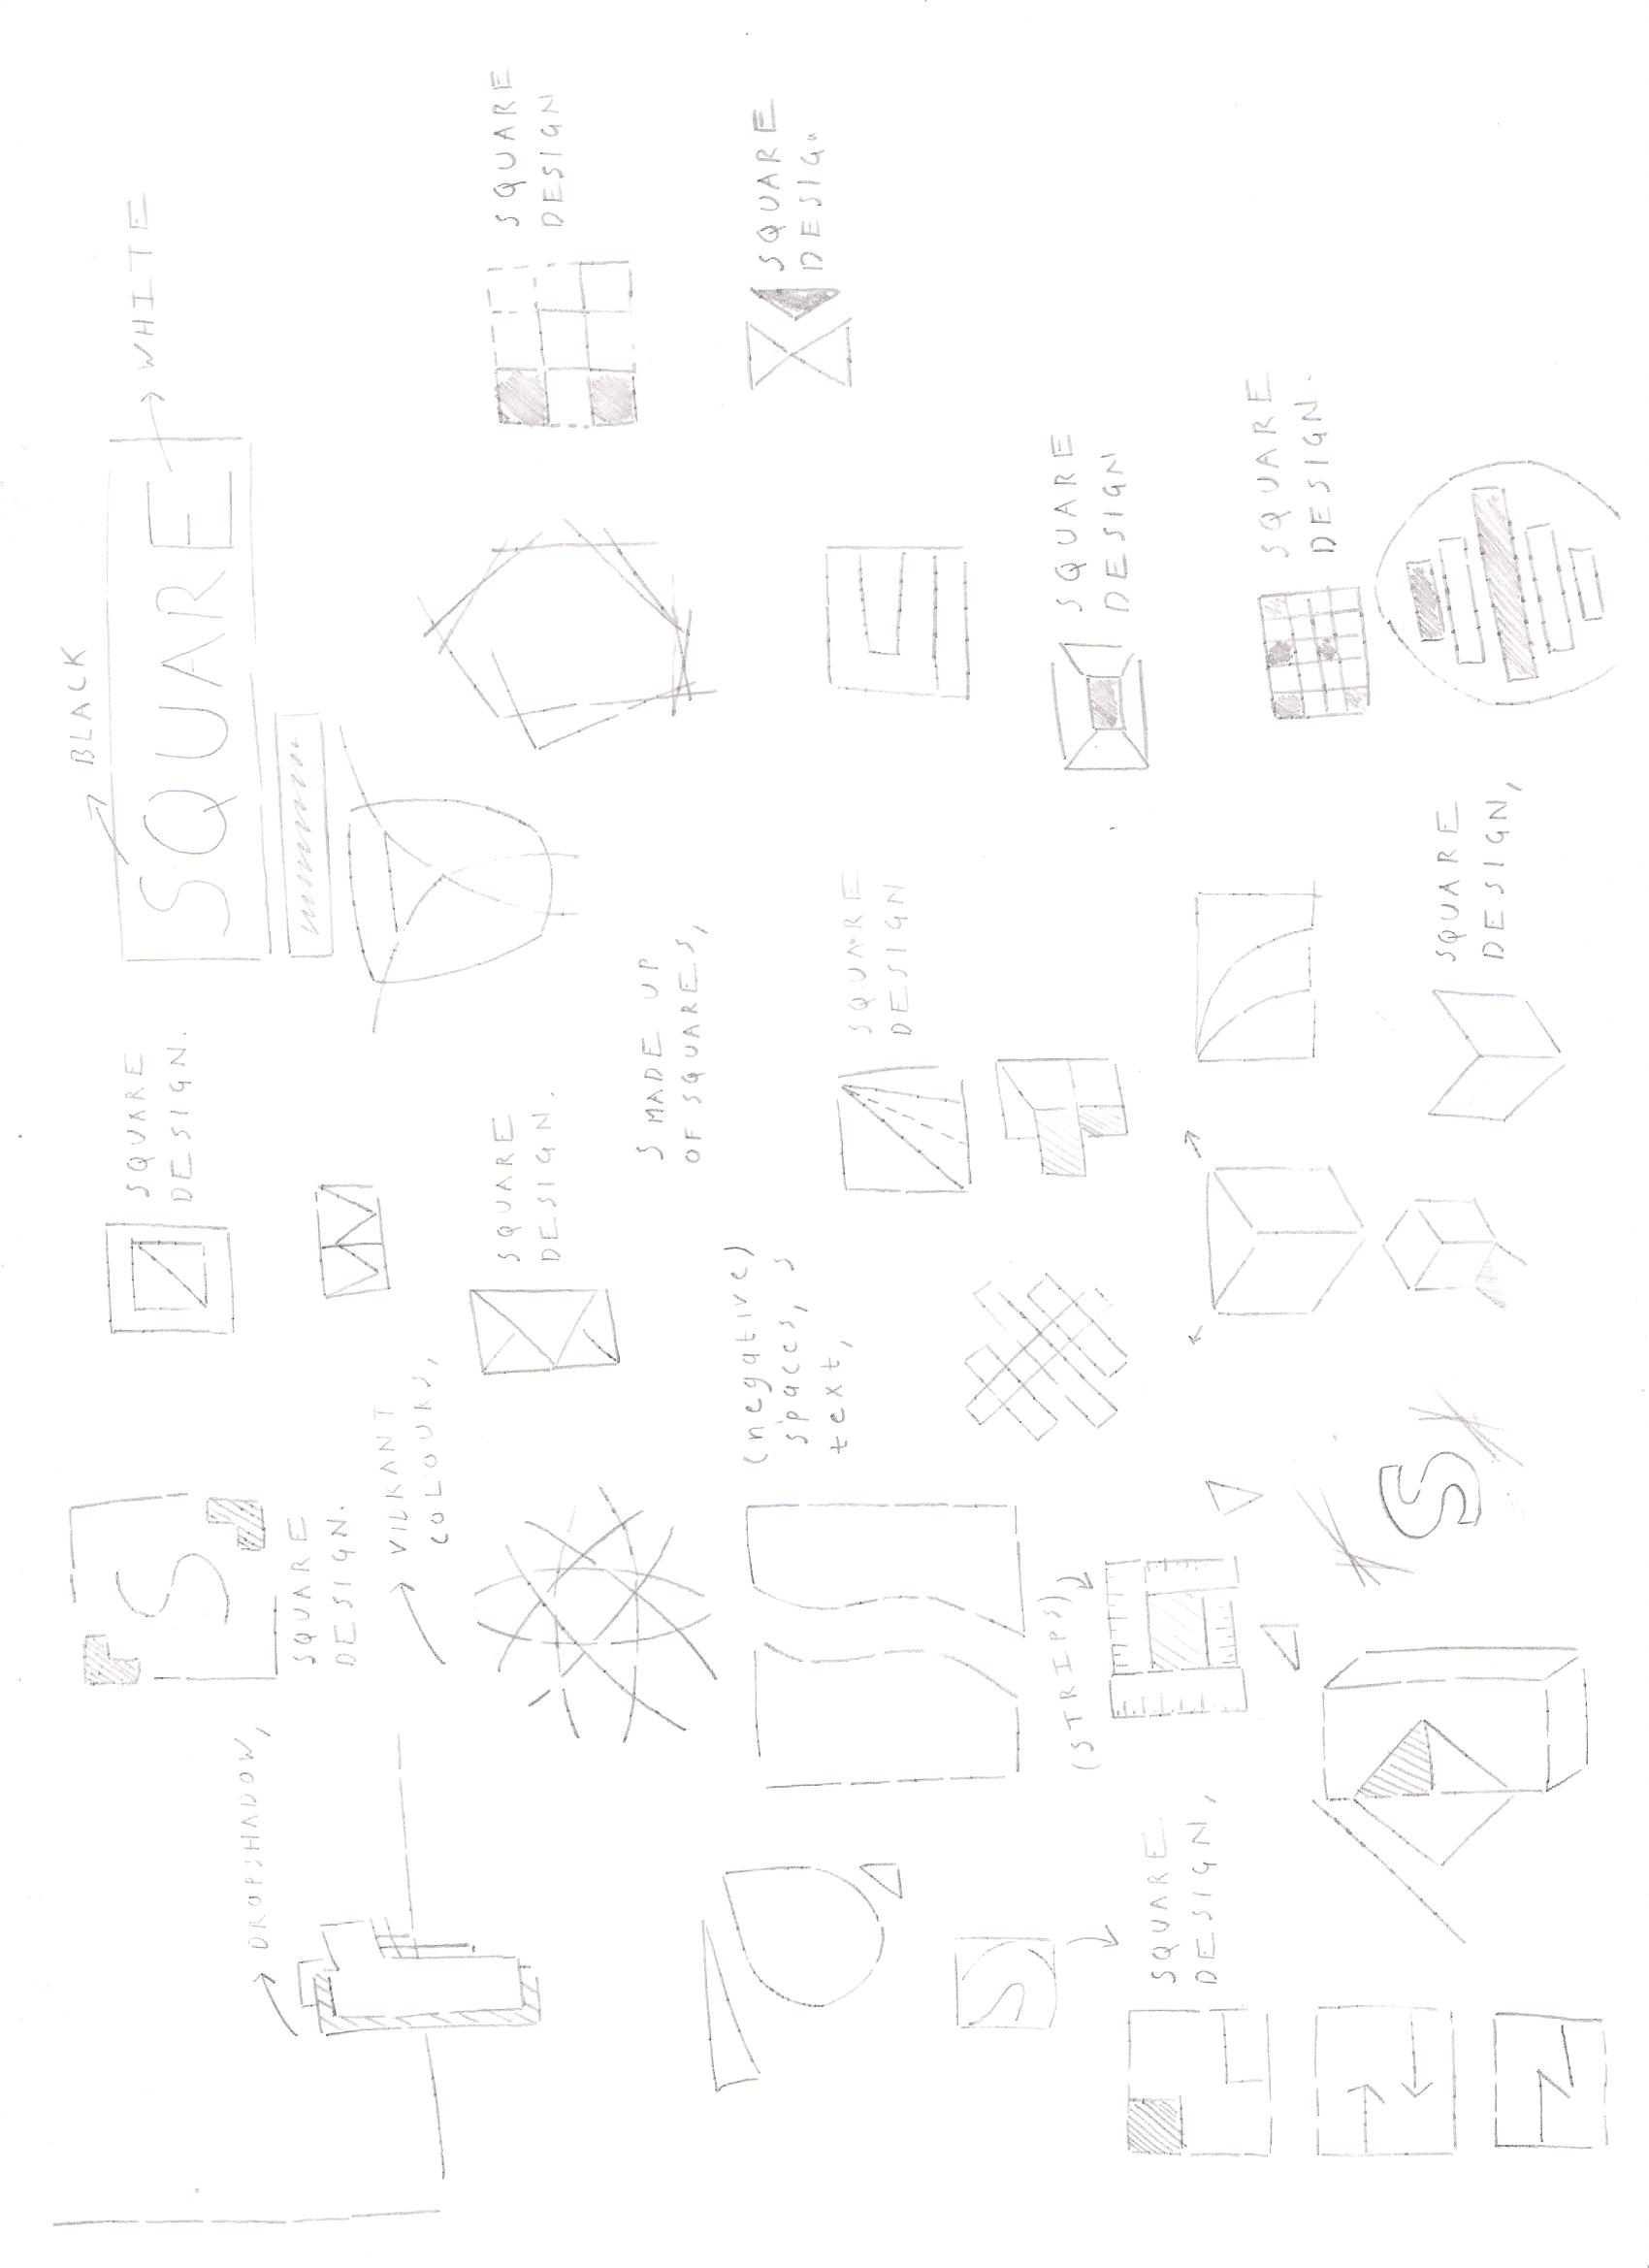 Square Design (Mood Boards)  - image 5 - student project